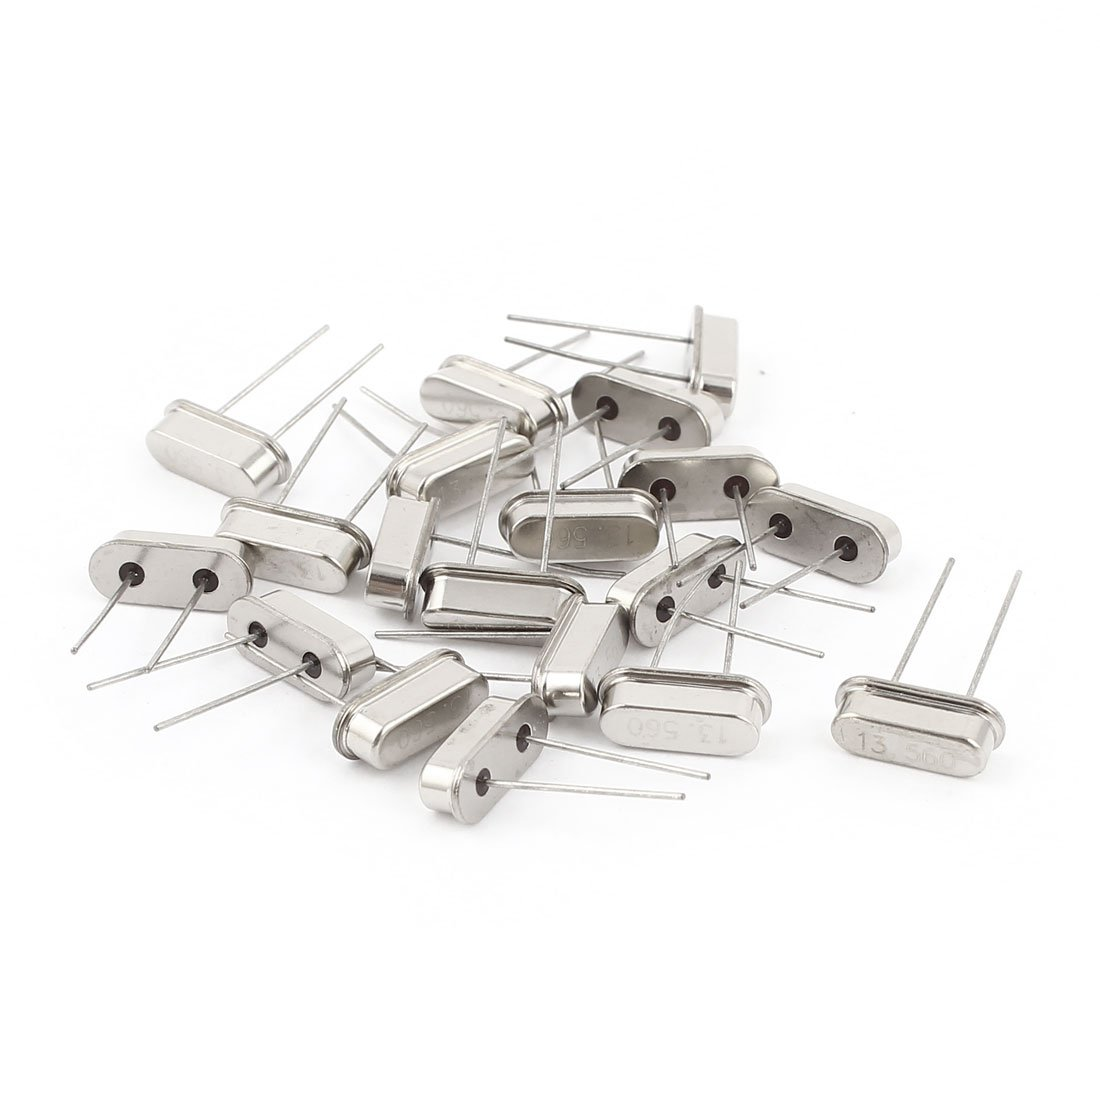 Aexit 20 Pcs Passive Components Low Profile 13.56MHZ DIP Crystal Oscillator Resonators HC-49S Replacements